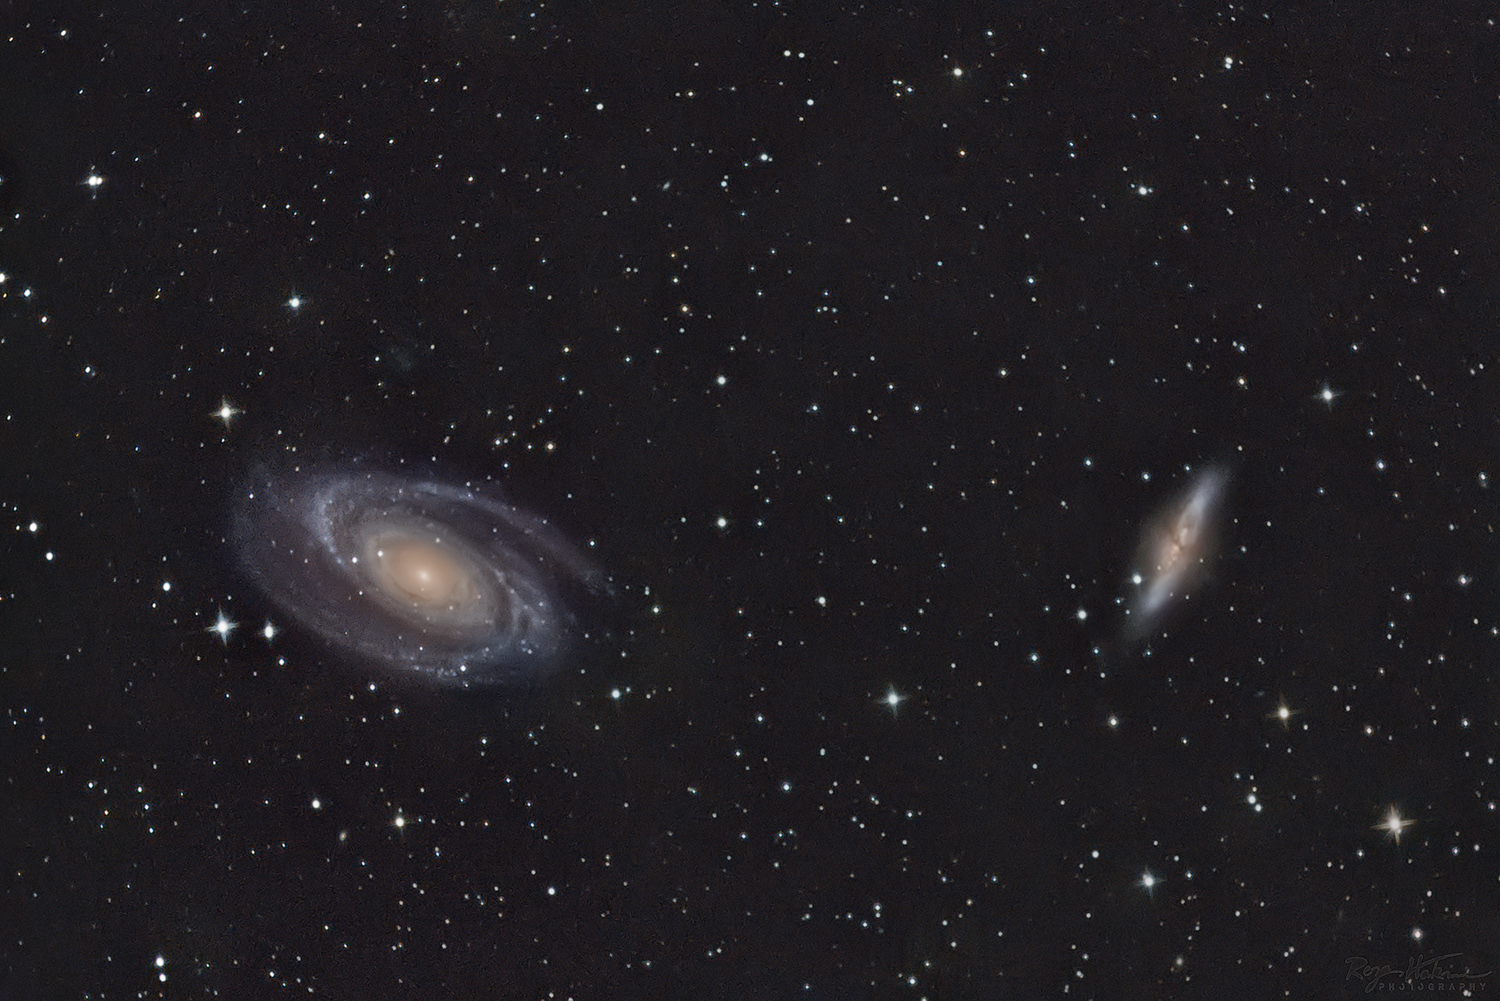 M81 & M82 - Bode and Cigar Galaxies